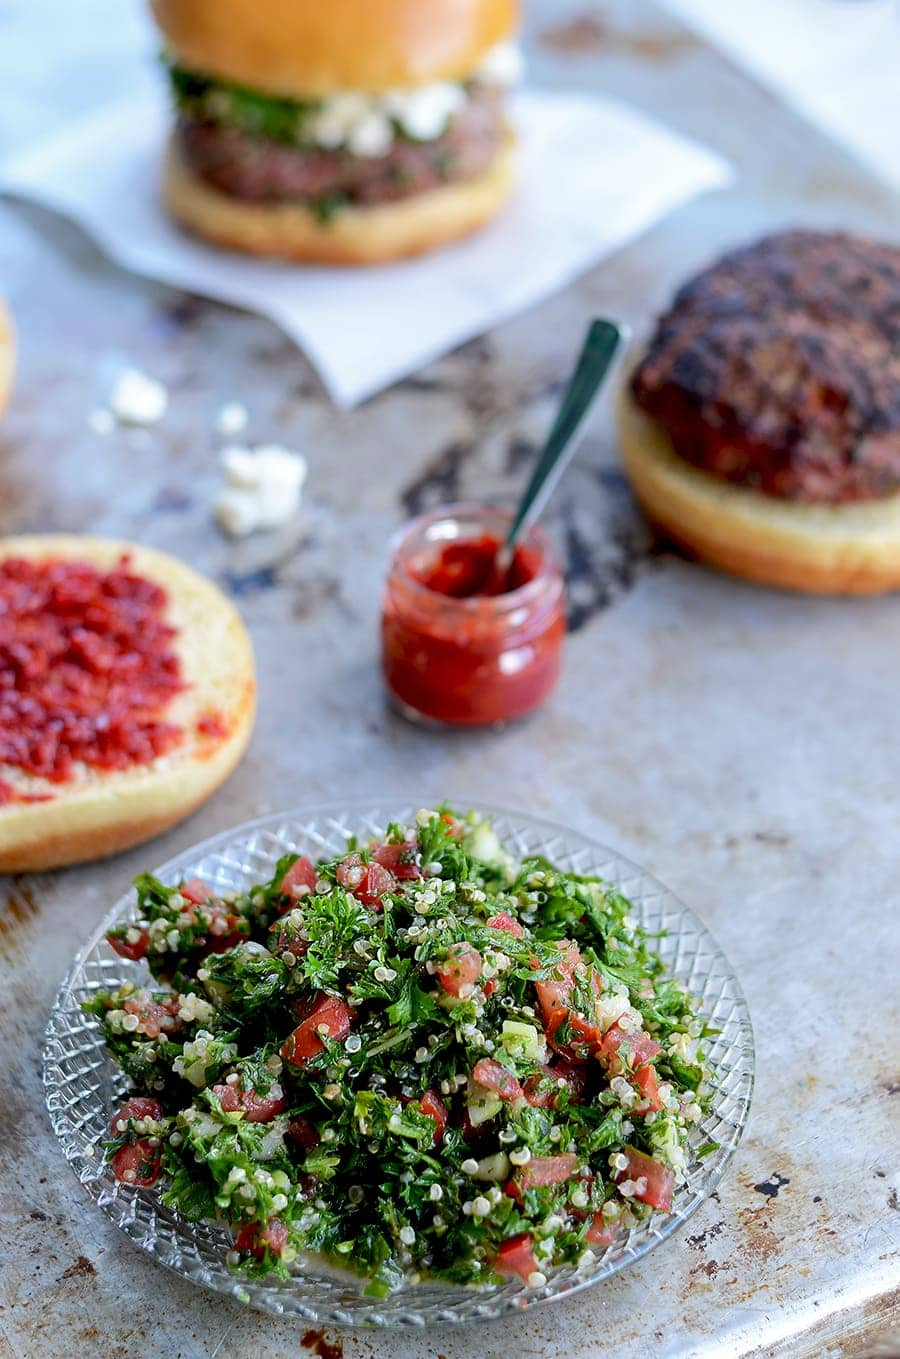 Make your next cookout a multicultural affair. These Tabouleh Turkey Burgers with Feta and Harissa are a fresh take on the classic grilled burger.